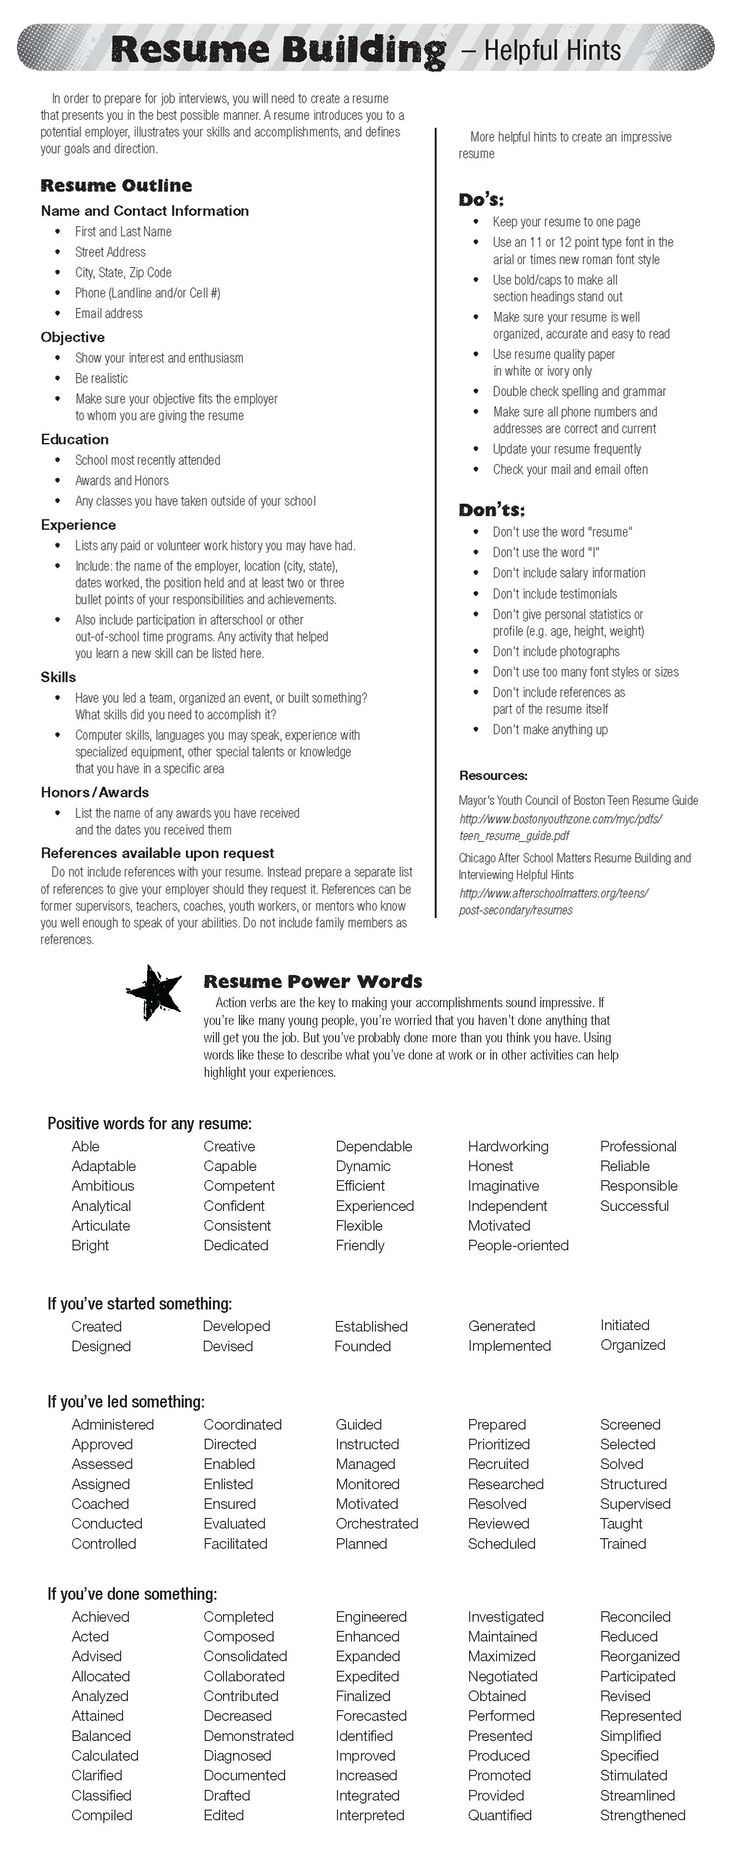 Opposenewapstandardsus  Picturesque  Ideas About Resume On Pinterest  Cv Format Resume Cv And  With Likable  Ideas About Resume On Pinterest  Cv Format Resume Cv And Resume Templates With Alluring Baseball Resume Also Best Resume Style In Addition Do You Need References On A Resume And Resume S As Well As Account Representative Resume Additionally What Do I Put On My Resume From Pinterestcom With Opposenewapstandardsus  Likable  Ideas About Resume On Pinterest  Cv Format Resume Cv And  With Alluring  Ideas About Resume On Pinterest  Cv Format Resume Cv And Resume Templates And Picturesque Baseball Resume Also Best Resume Style In Addition Do You Need References On A Resume From Pinterestcom